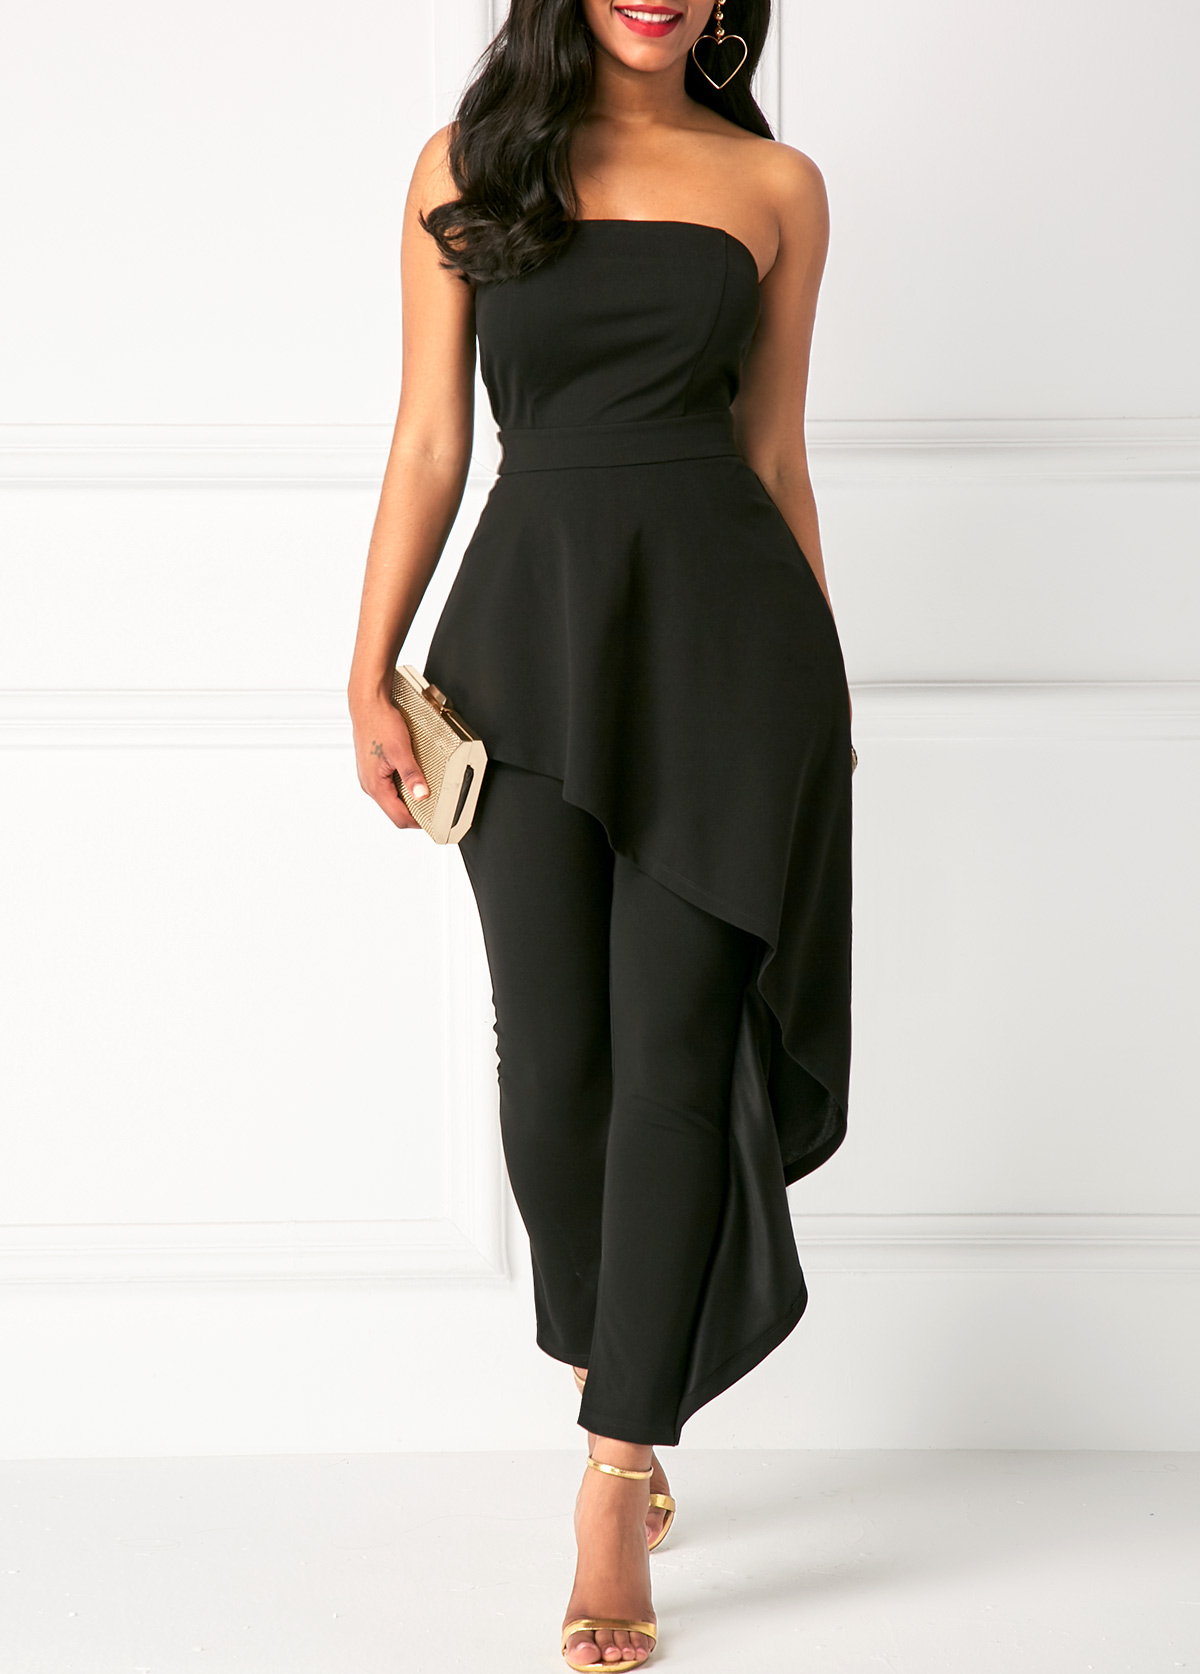 317cb93668ba High Waist Ruffle Overlay Strapless Black Jumpsuit. AddThis Sharing  Buttons. Share to Facebook Share to Pinterest